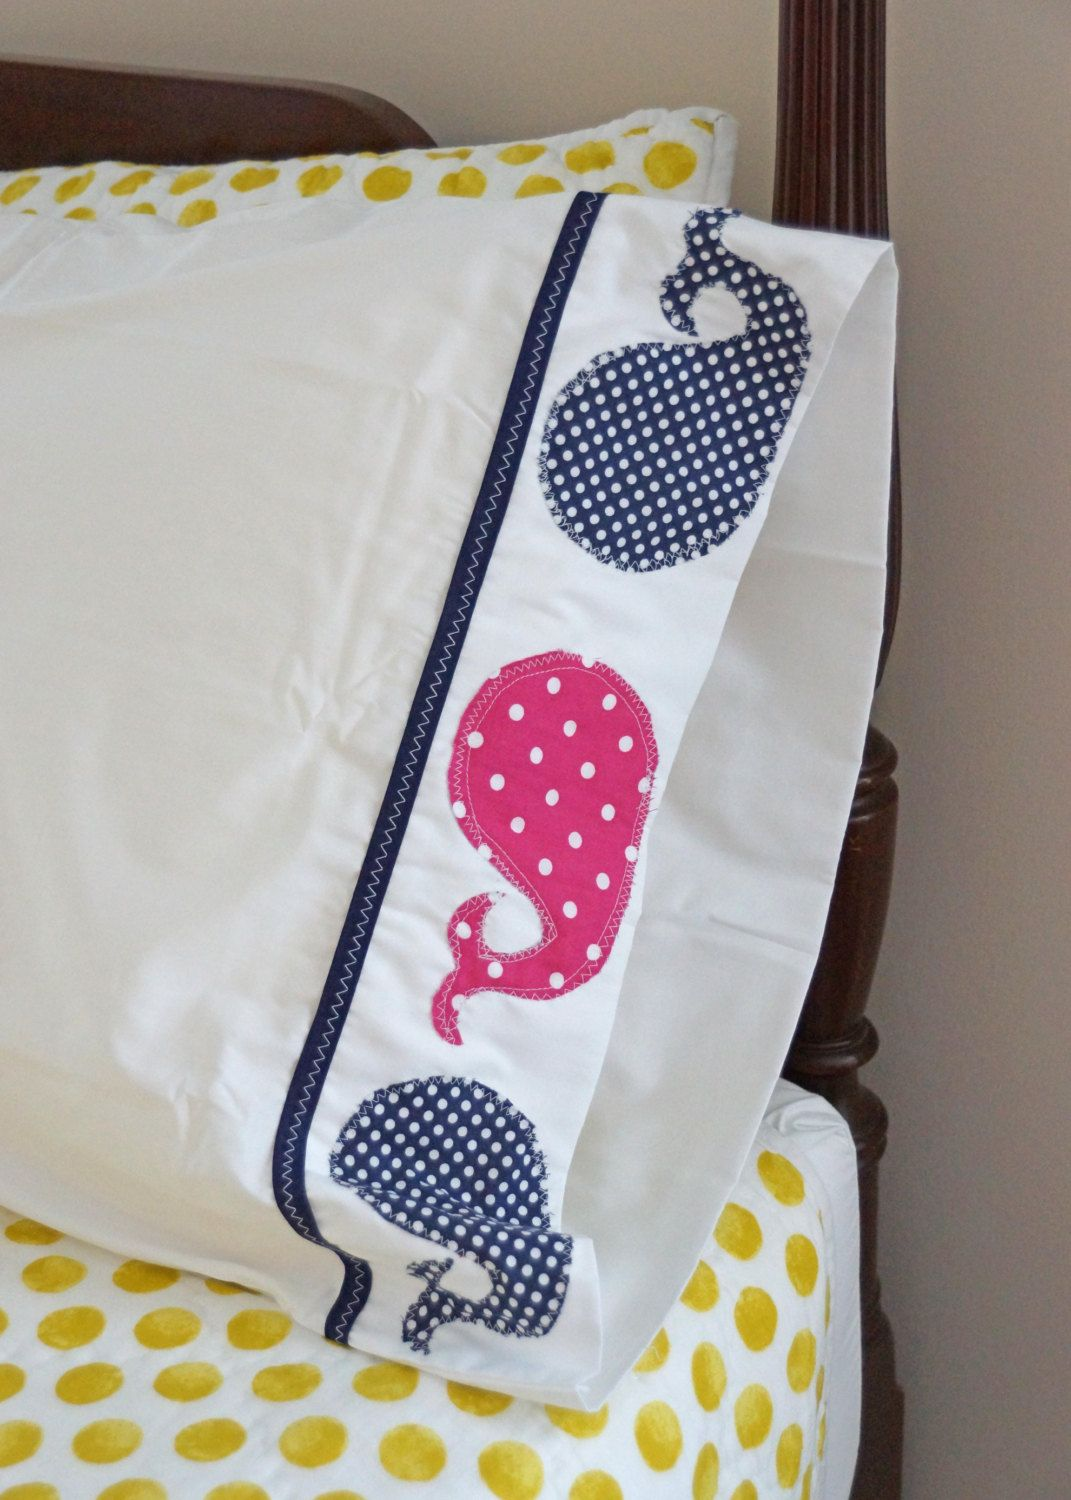 Whale of a Time Appliqued Pillowcase | proyecto tela | Pinterest ...